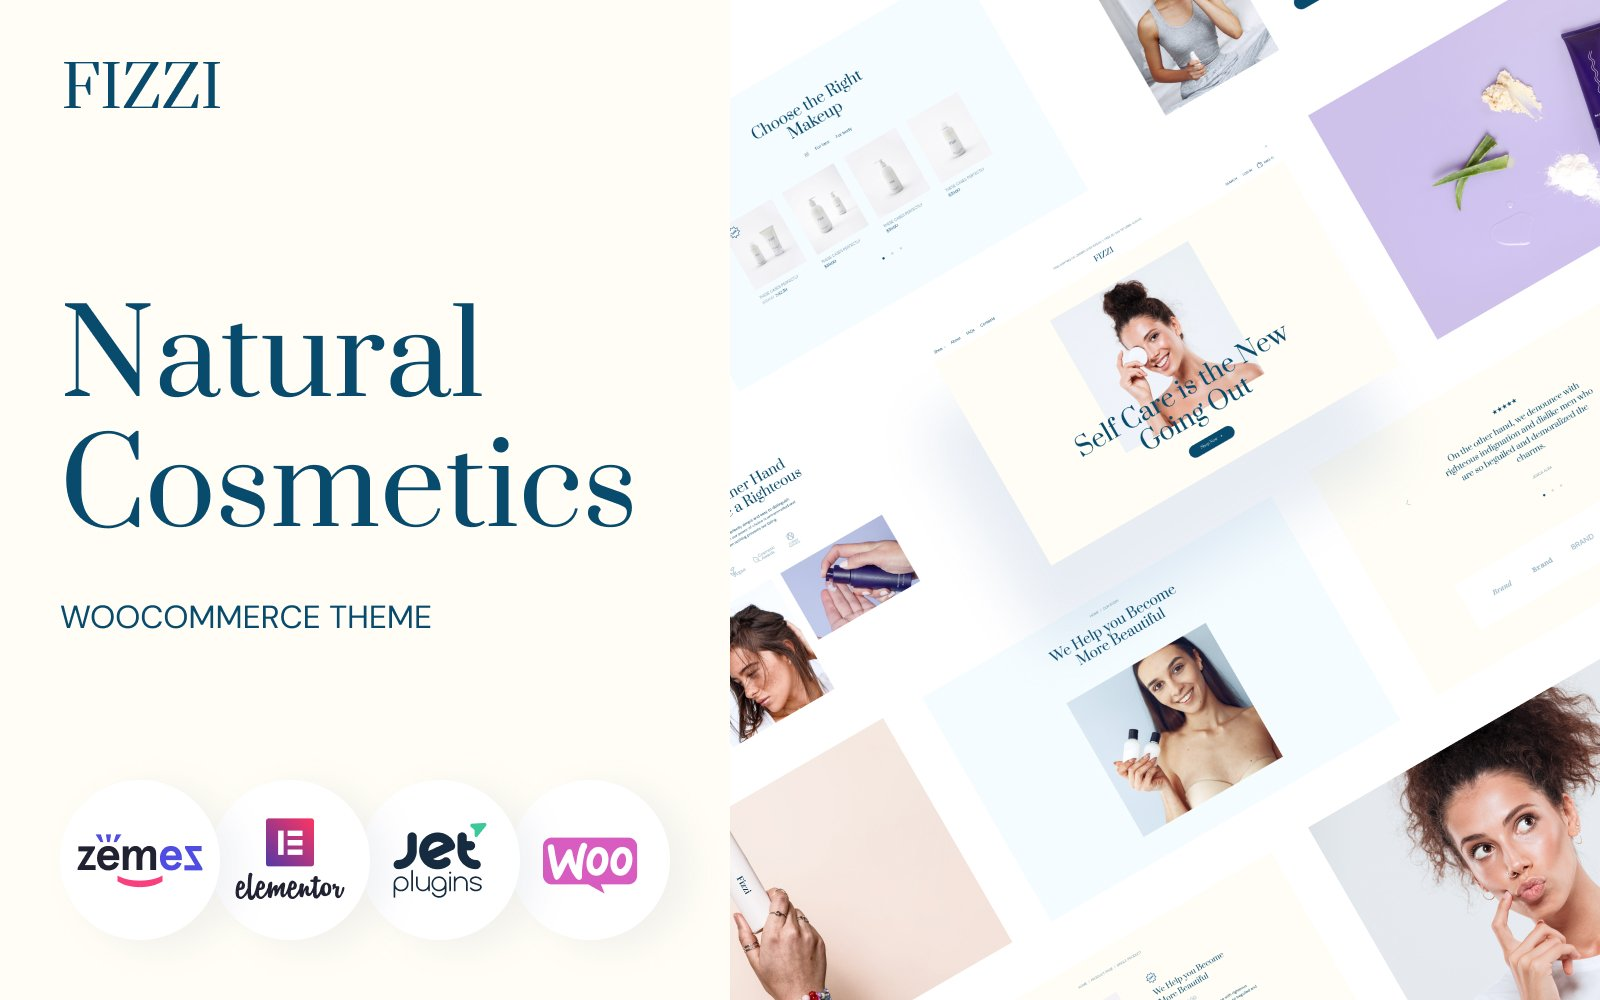 """Natural Cosmetics Website Template - Fizzi"" thème WooCommerce adaptatif #139732"